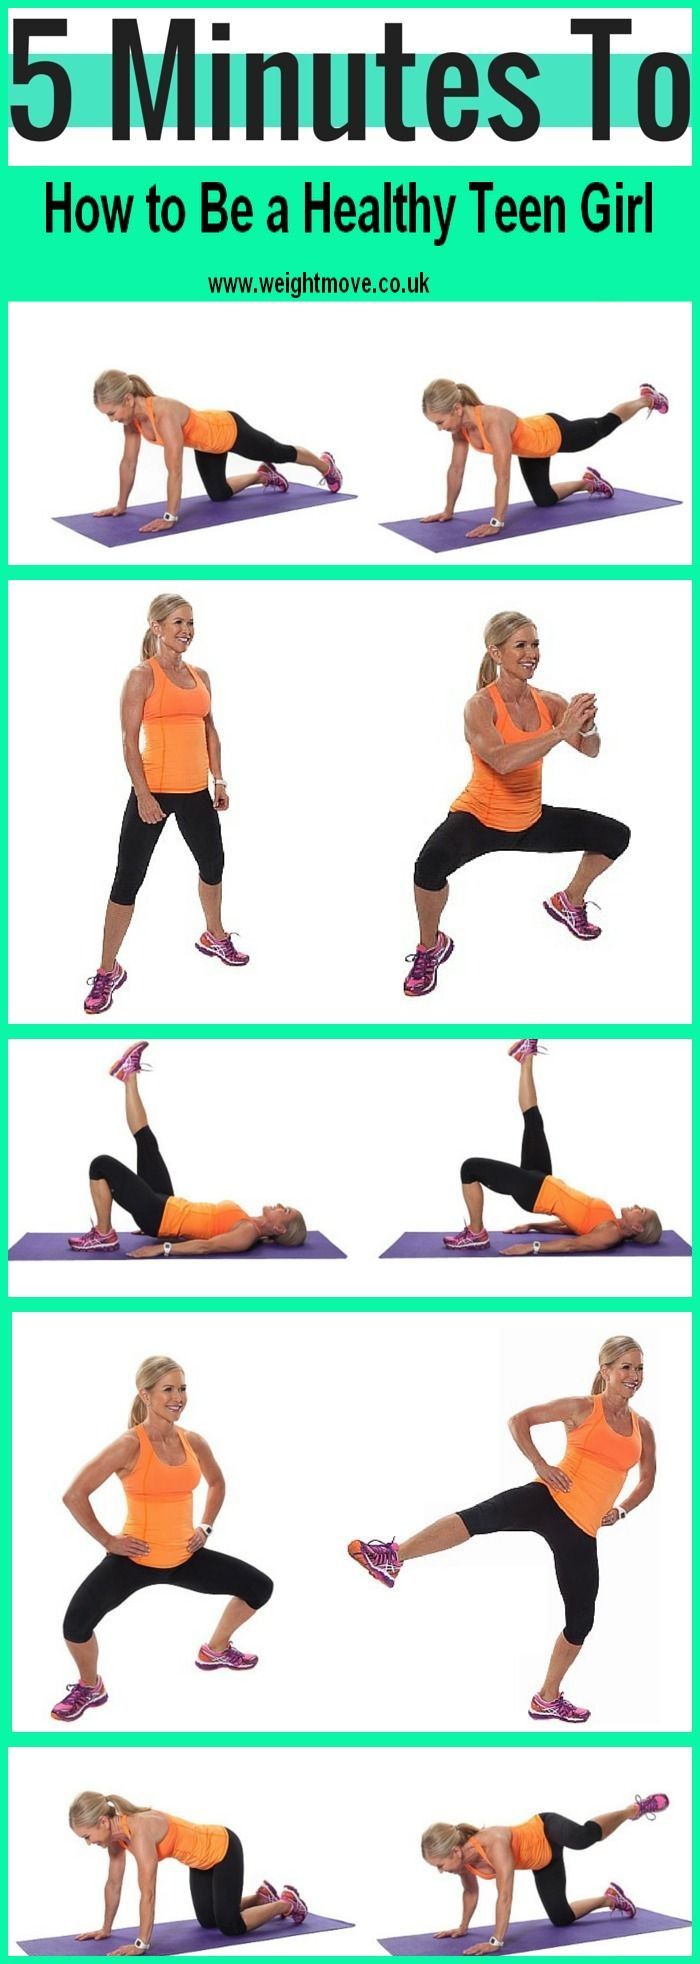 25+ Best Ideas About Teen Diet On Pinterest  Workouts For Teens, Good  Diets And Tone Up Workouts